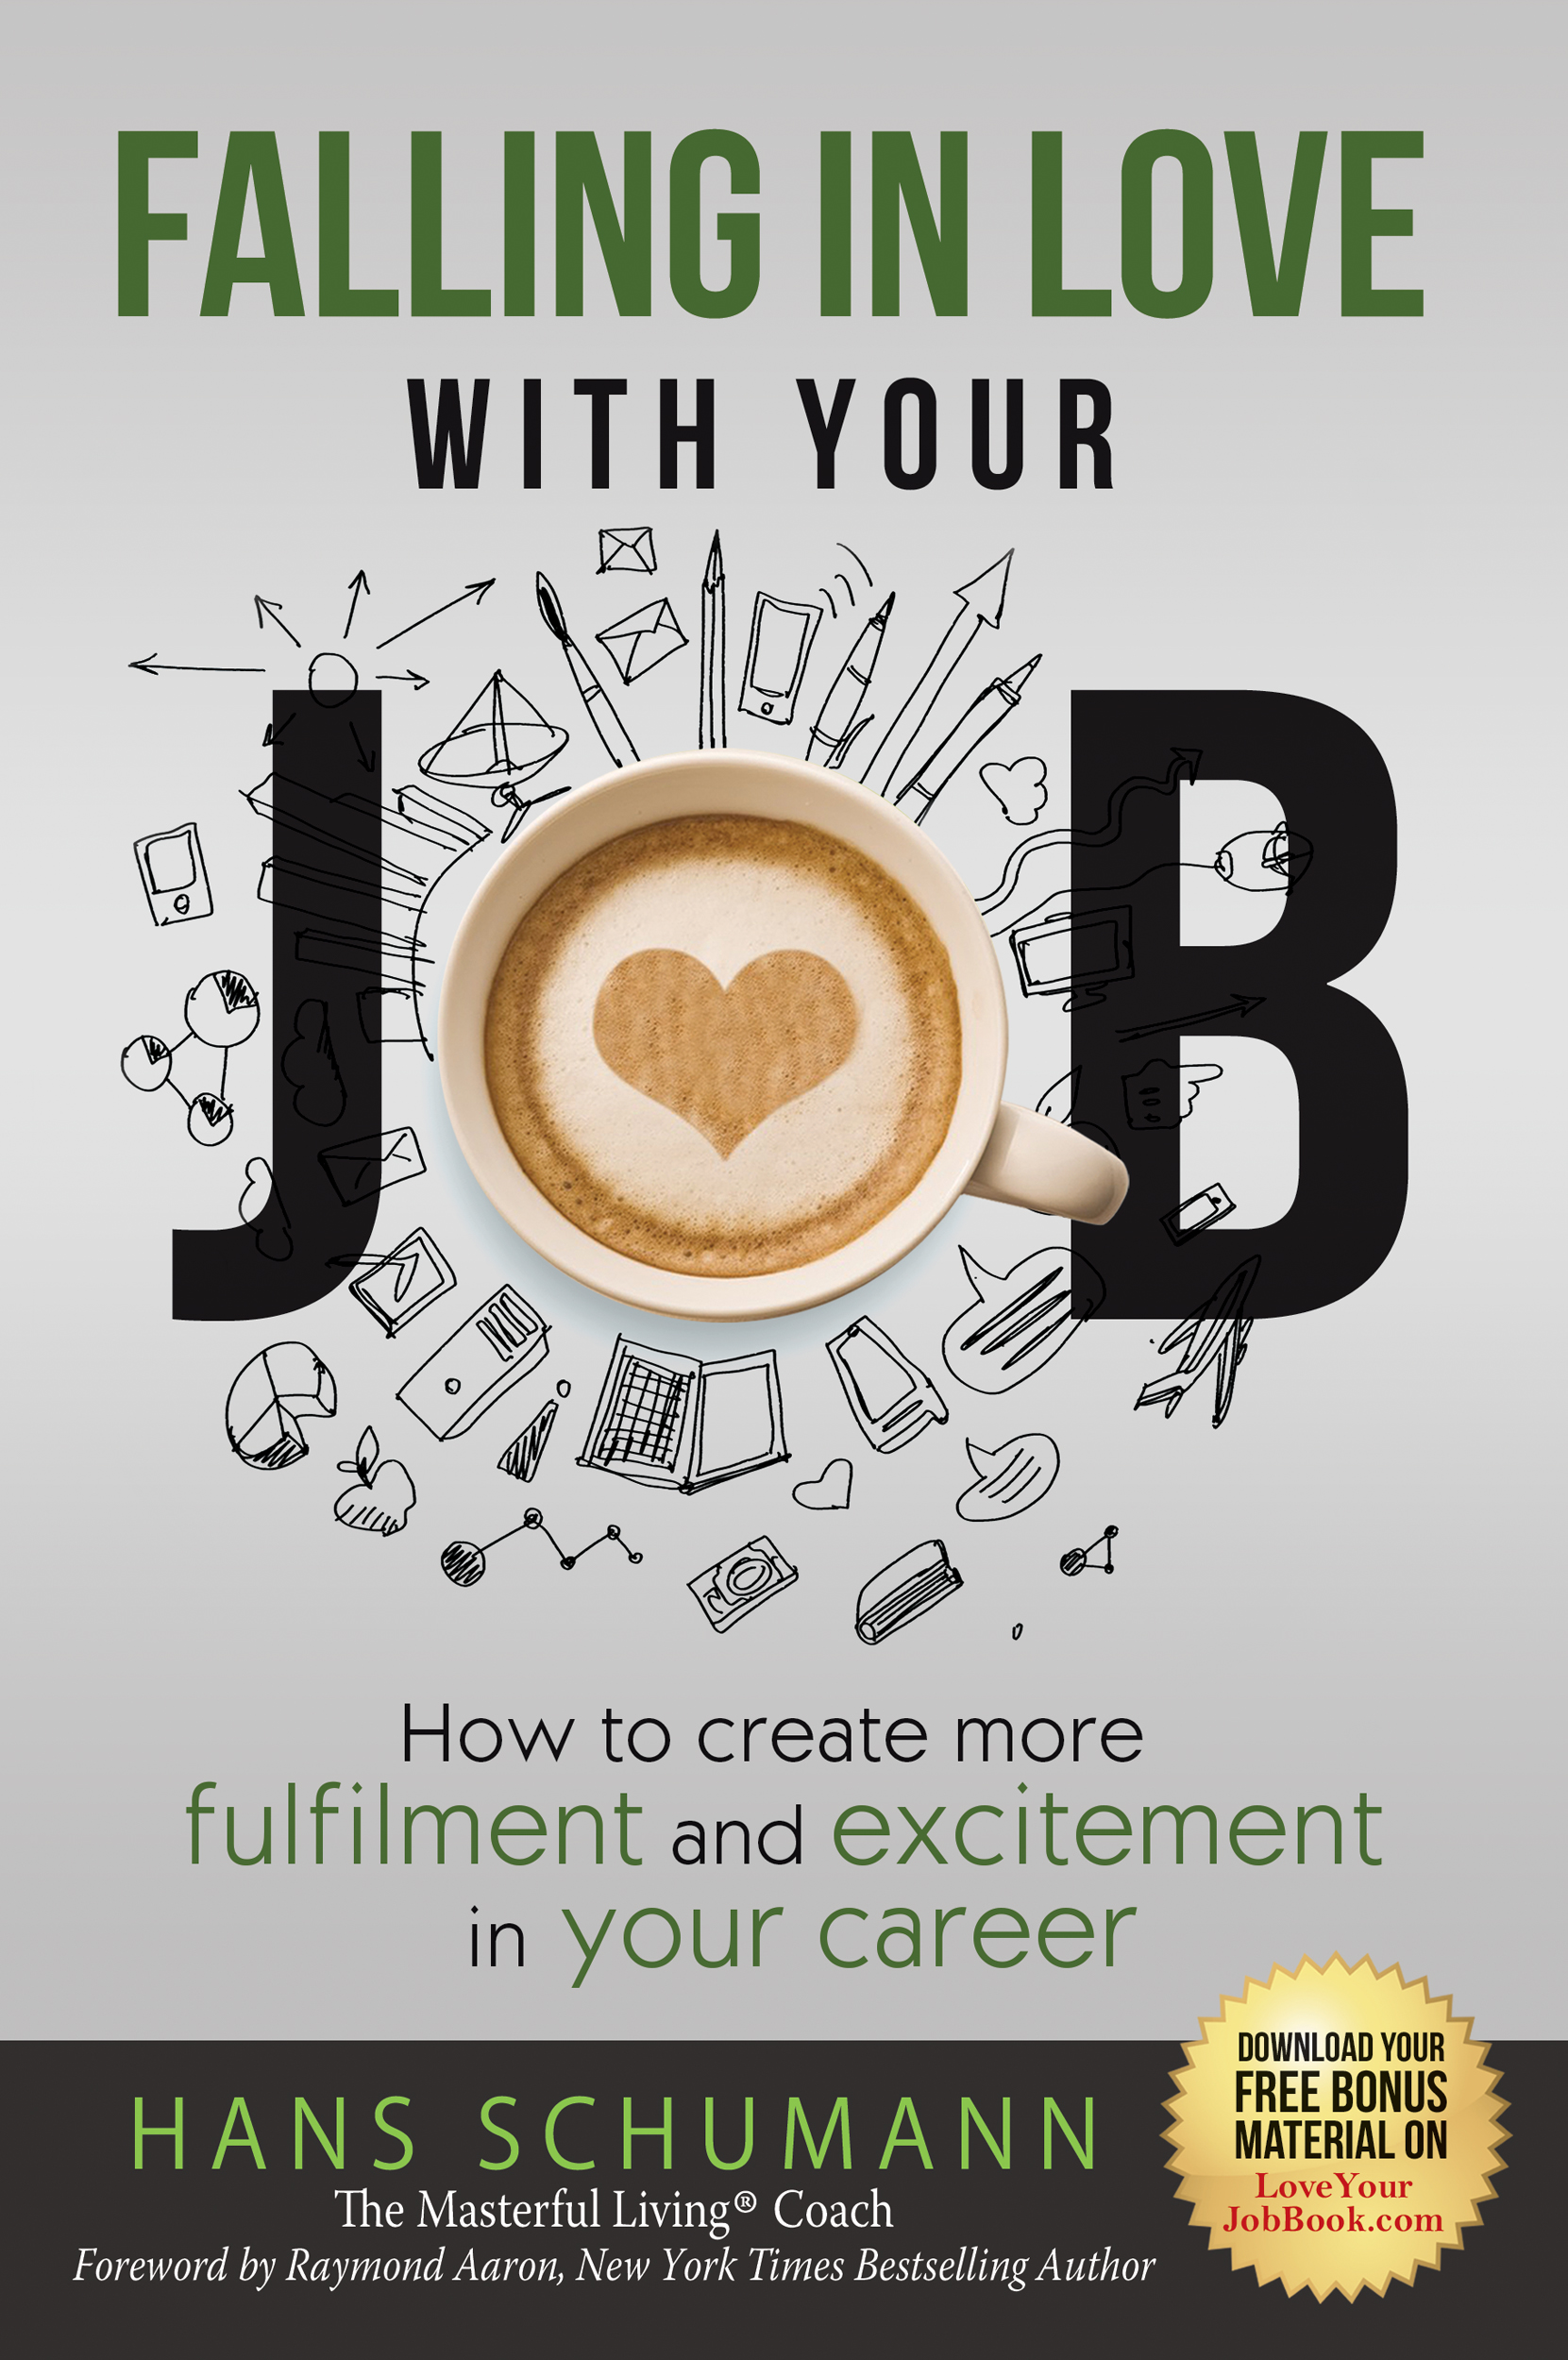 Falling in Love with your Job by Hans Schumann